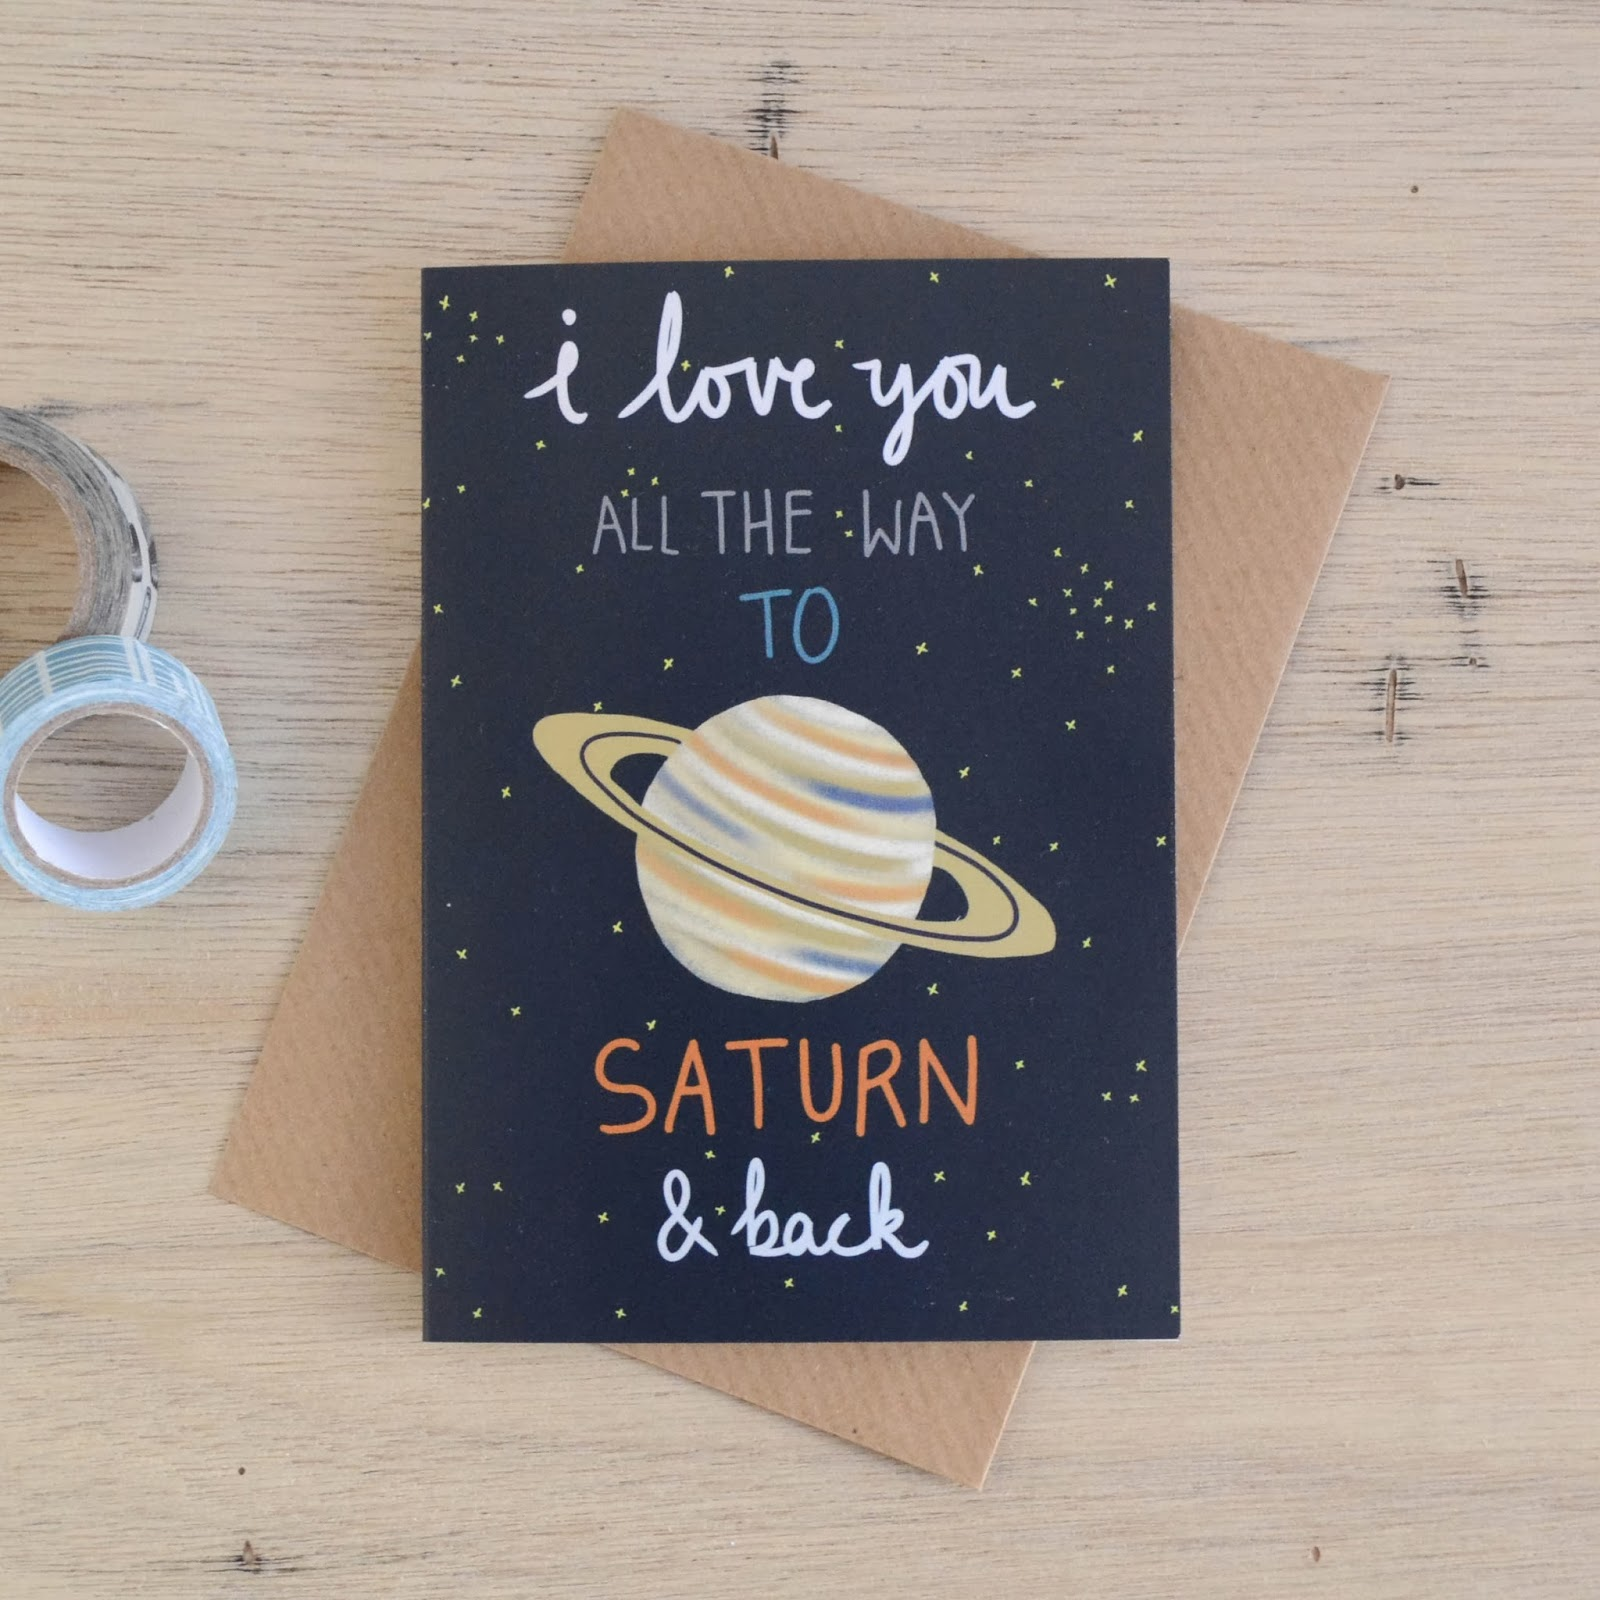 http://folksy.com/items/5725641-I-Love-You-To-Saturn-Back-Card